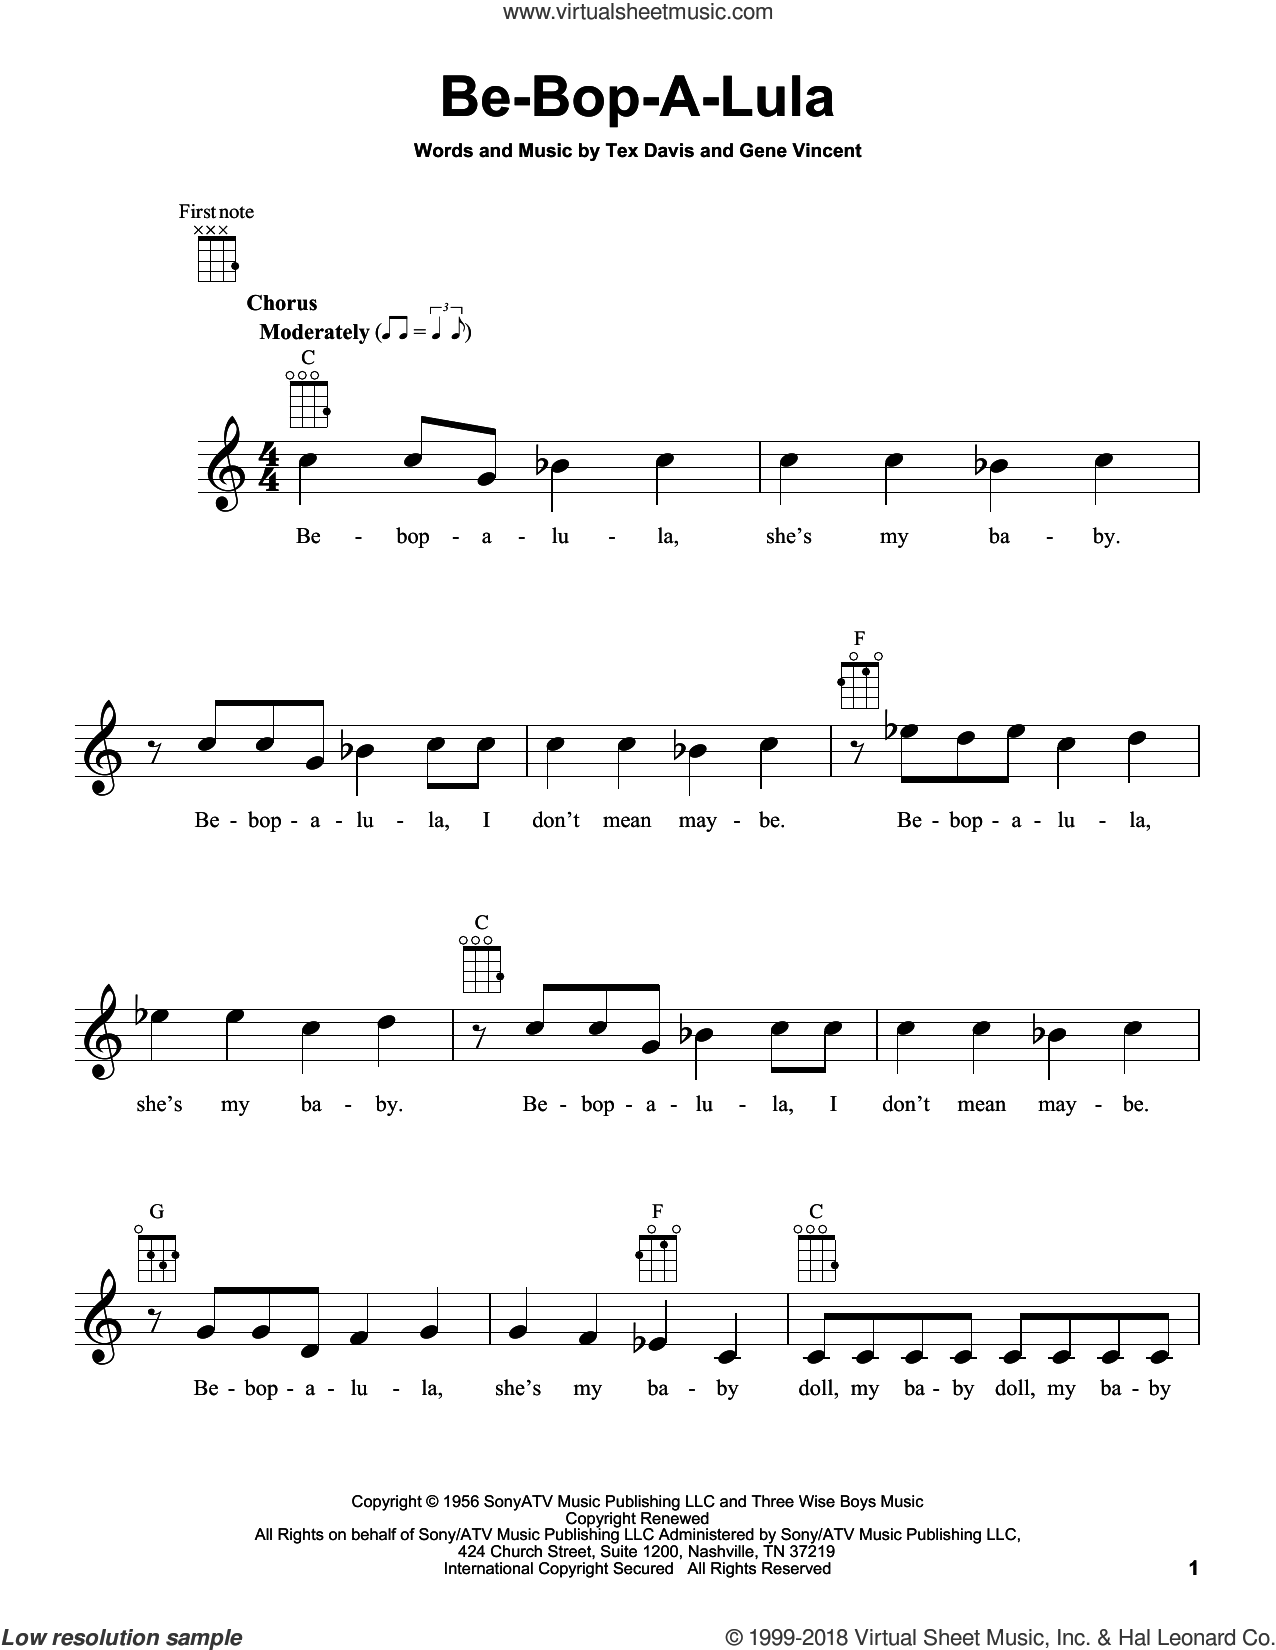 Be-Bop-A-Lula sheet music for ukulele by Gene Vincent & Tex Davis, Gene Vincent and Tex Davis, intermediate skill level